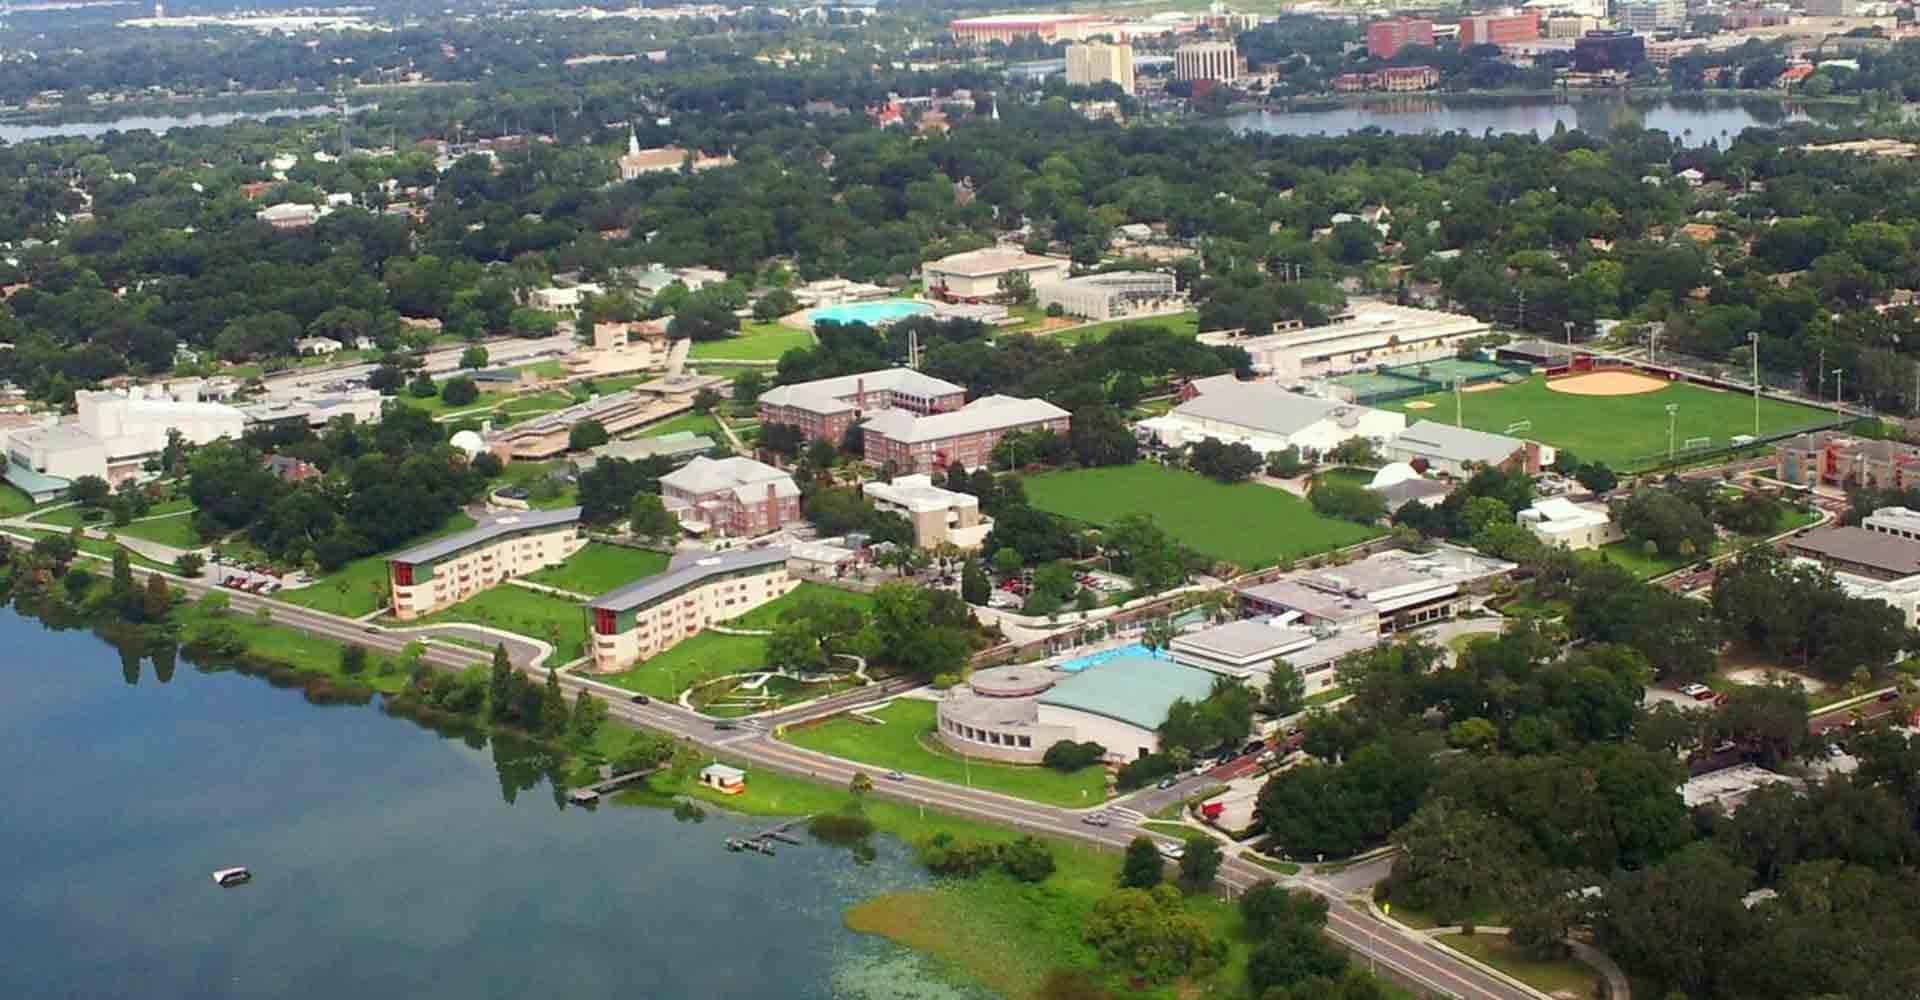 Aerial photo of Florida Southern College